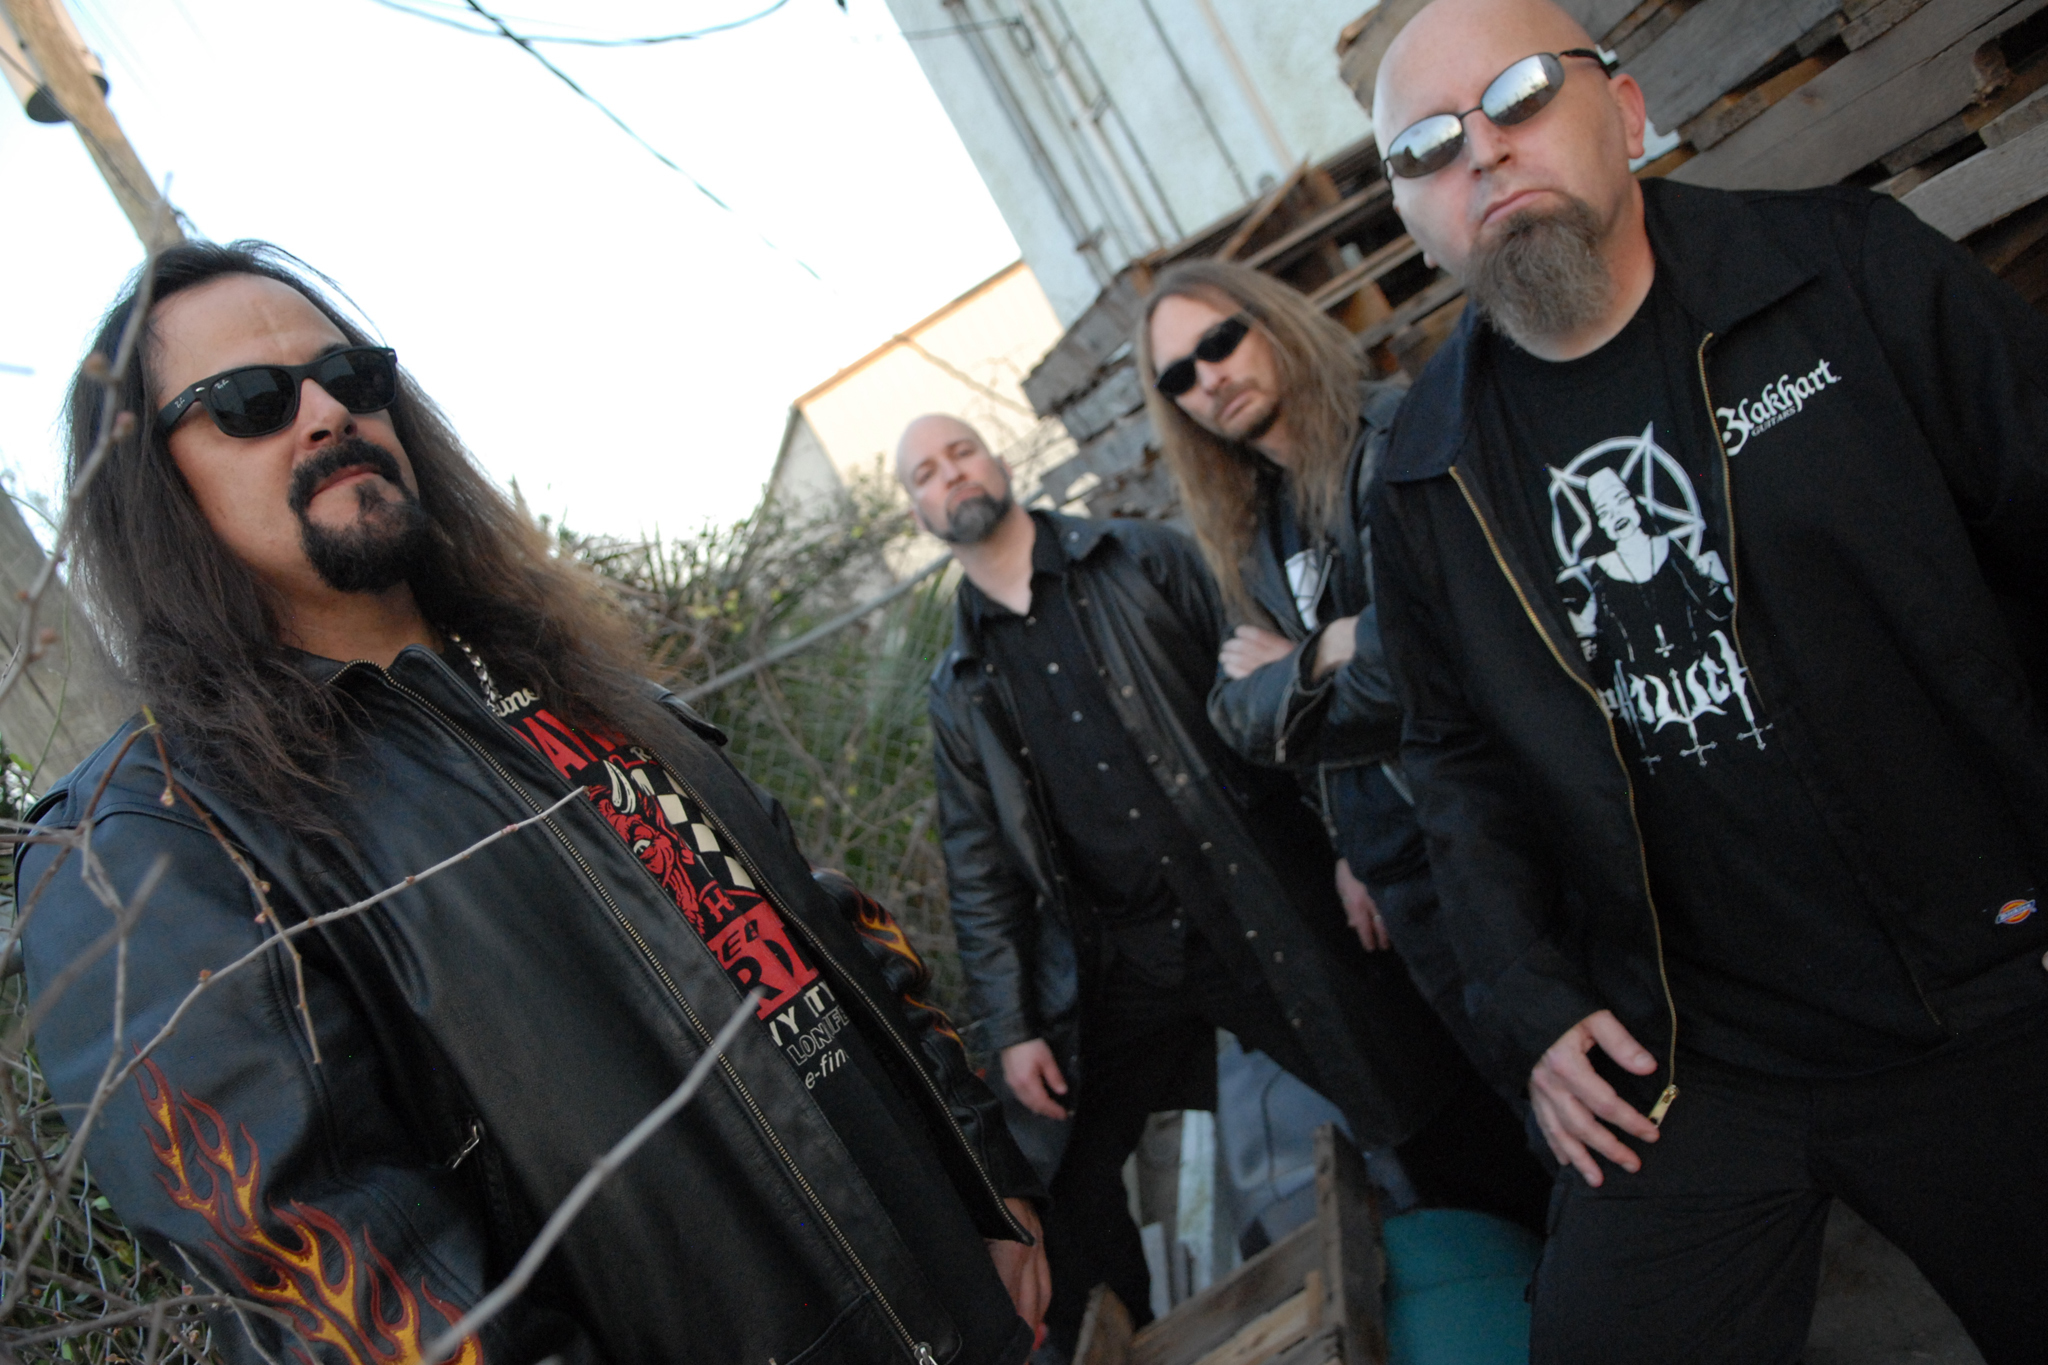 Deicide + Hate Eternal + Entombed A.D. and more